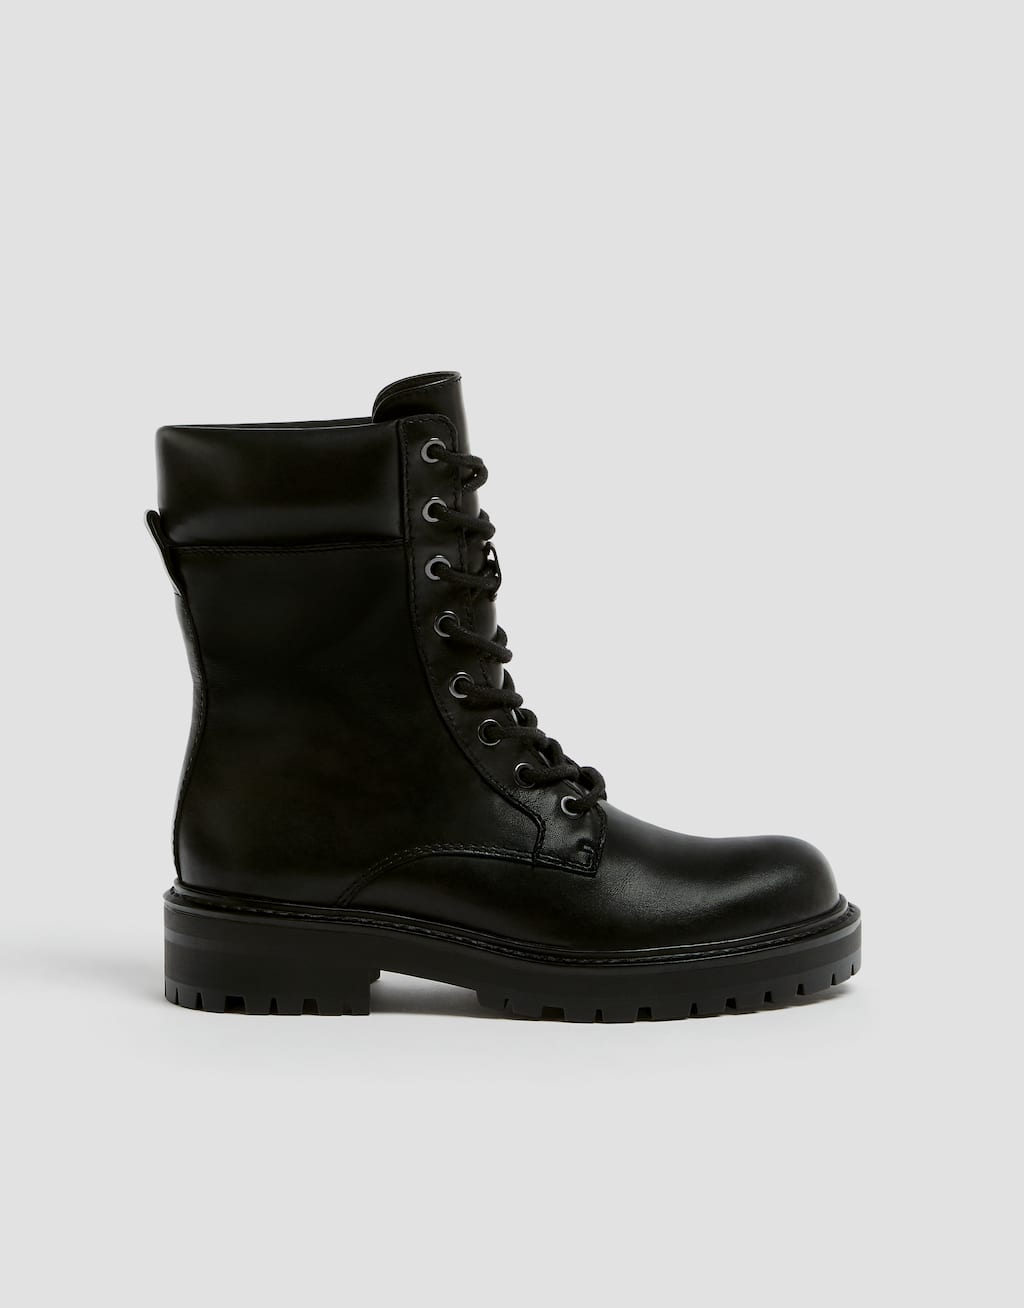 Bottes Militaires Cuir by Pull & Bear